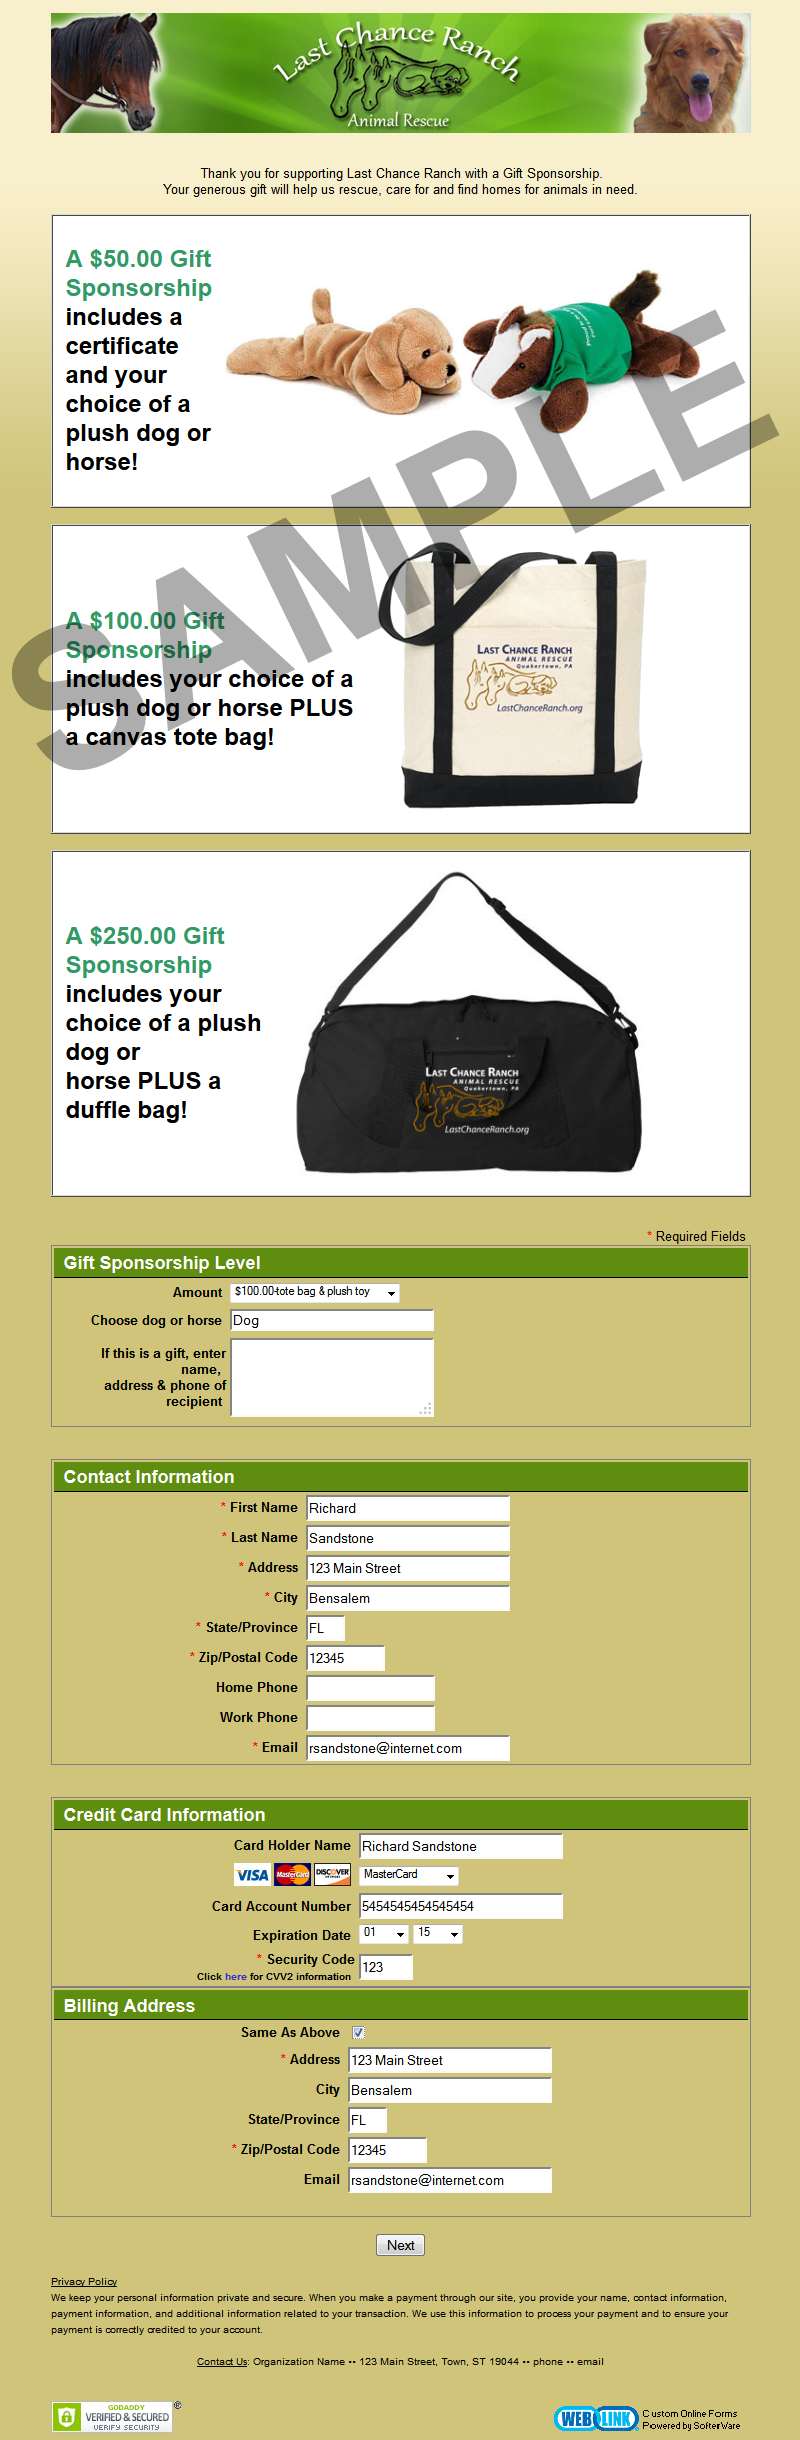 online donation page samples other examples of weblink